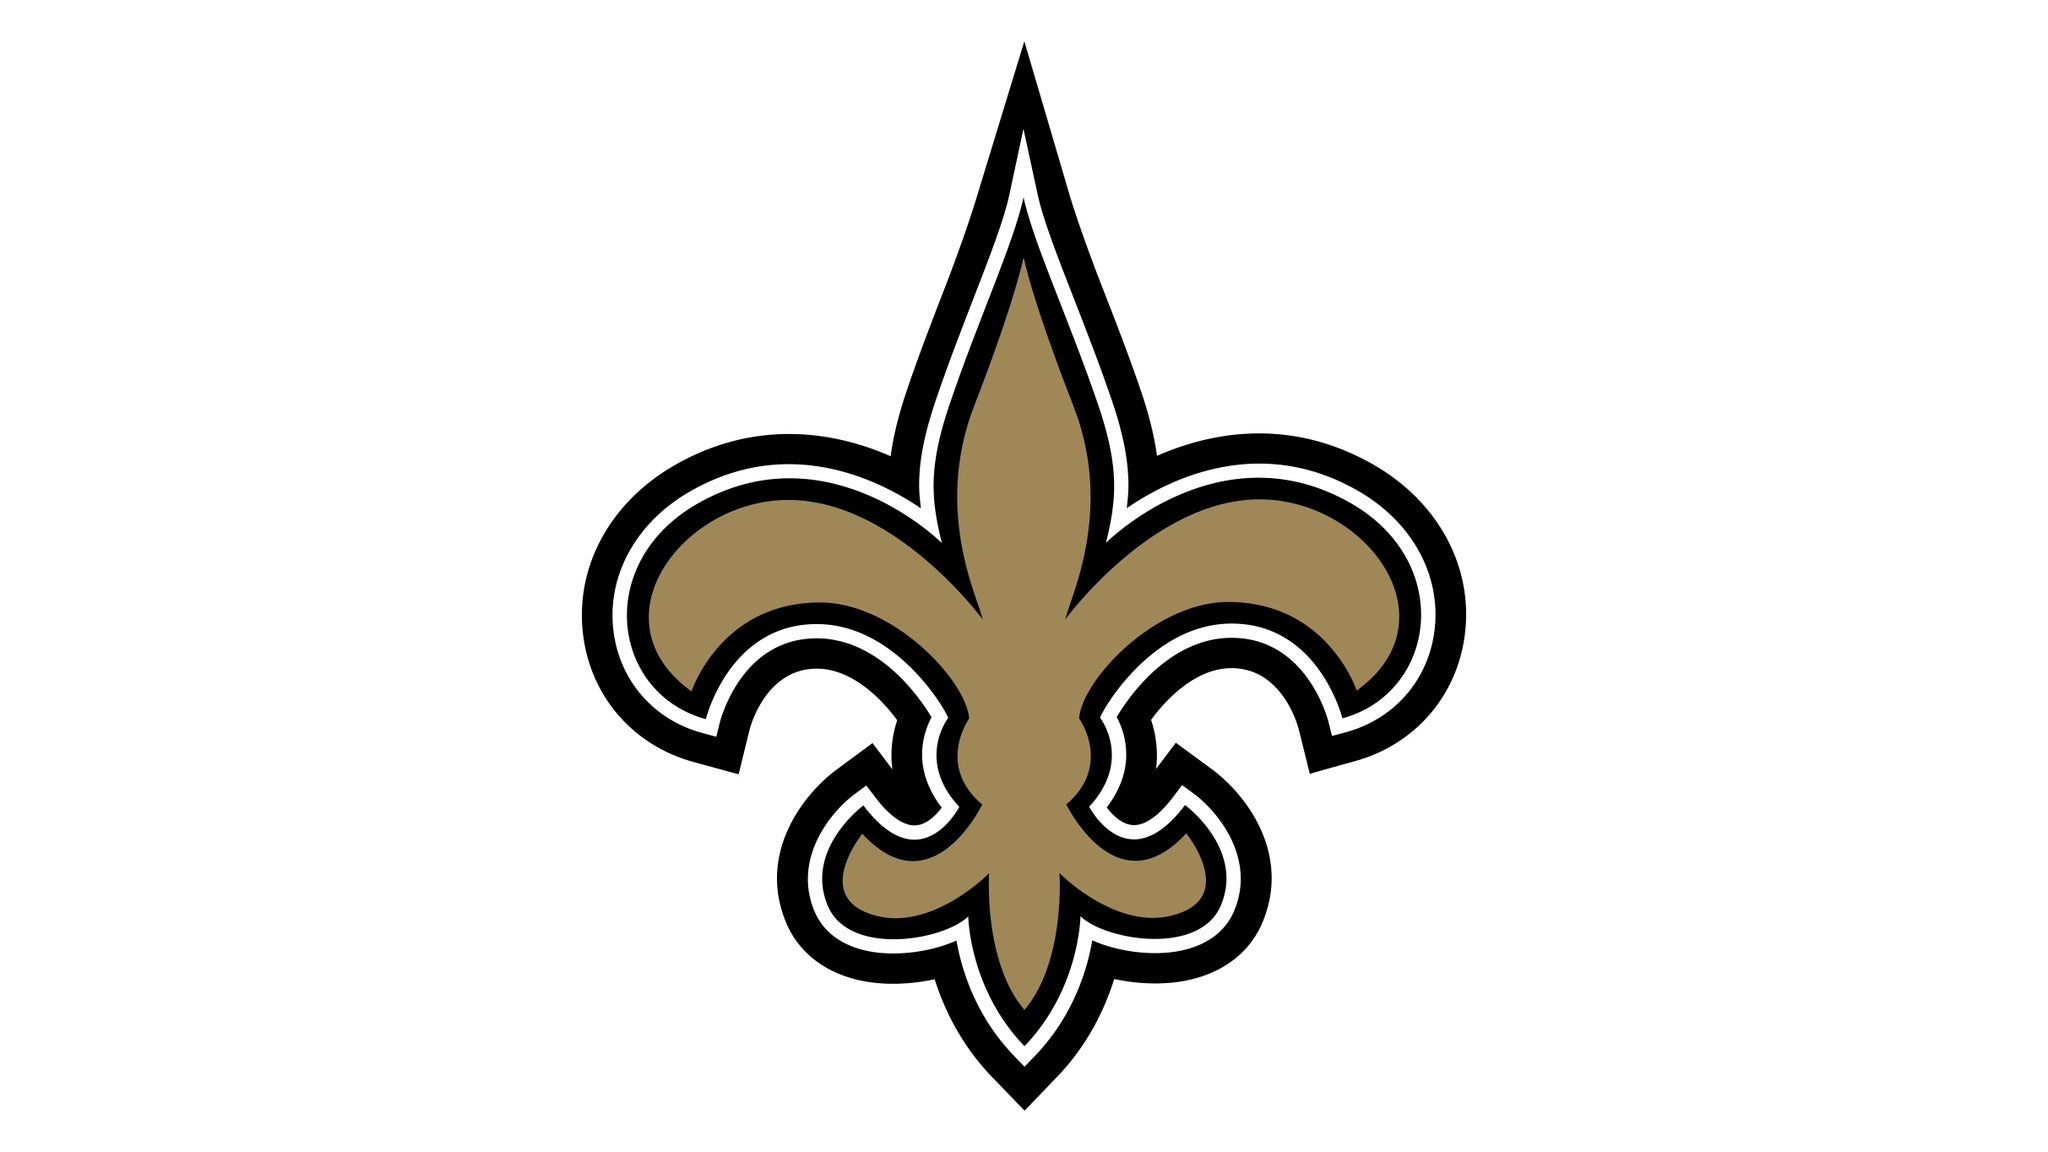 New Orleans Saints vs. Tampa Bay Buccaneers - New Orleans, LA 70112